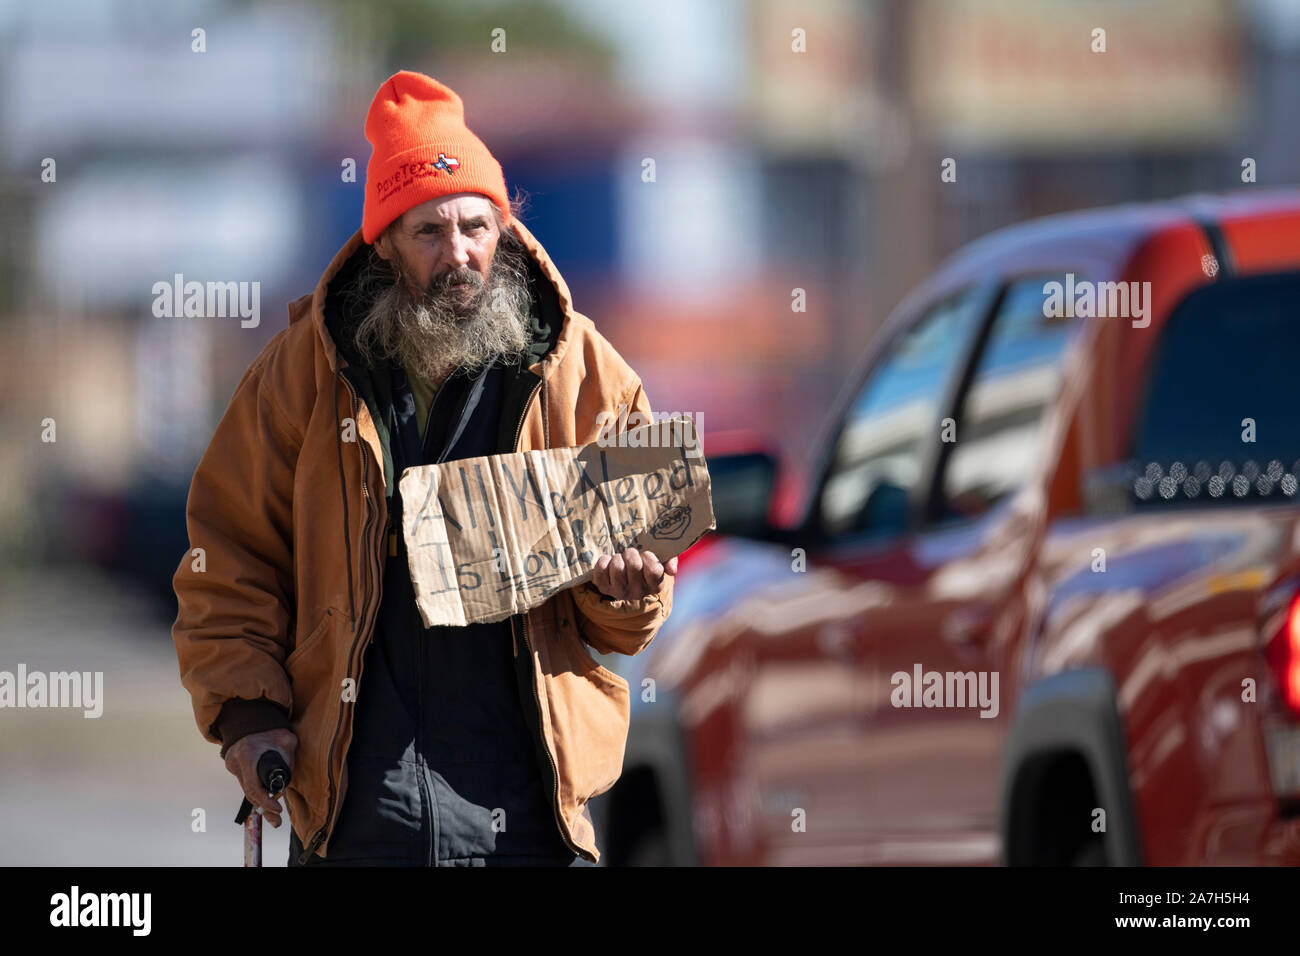 Homeless man panhandles for money at a busy intersection near a homeless encampment under a highway overpass days before a threatened crackdown by Texas Governor Greg Abbott on public right-of-way camping. Stock Photo